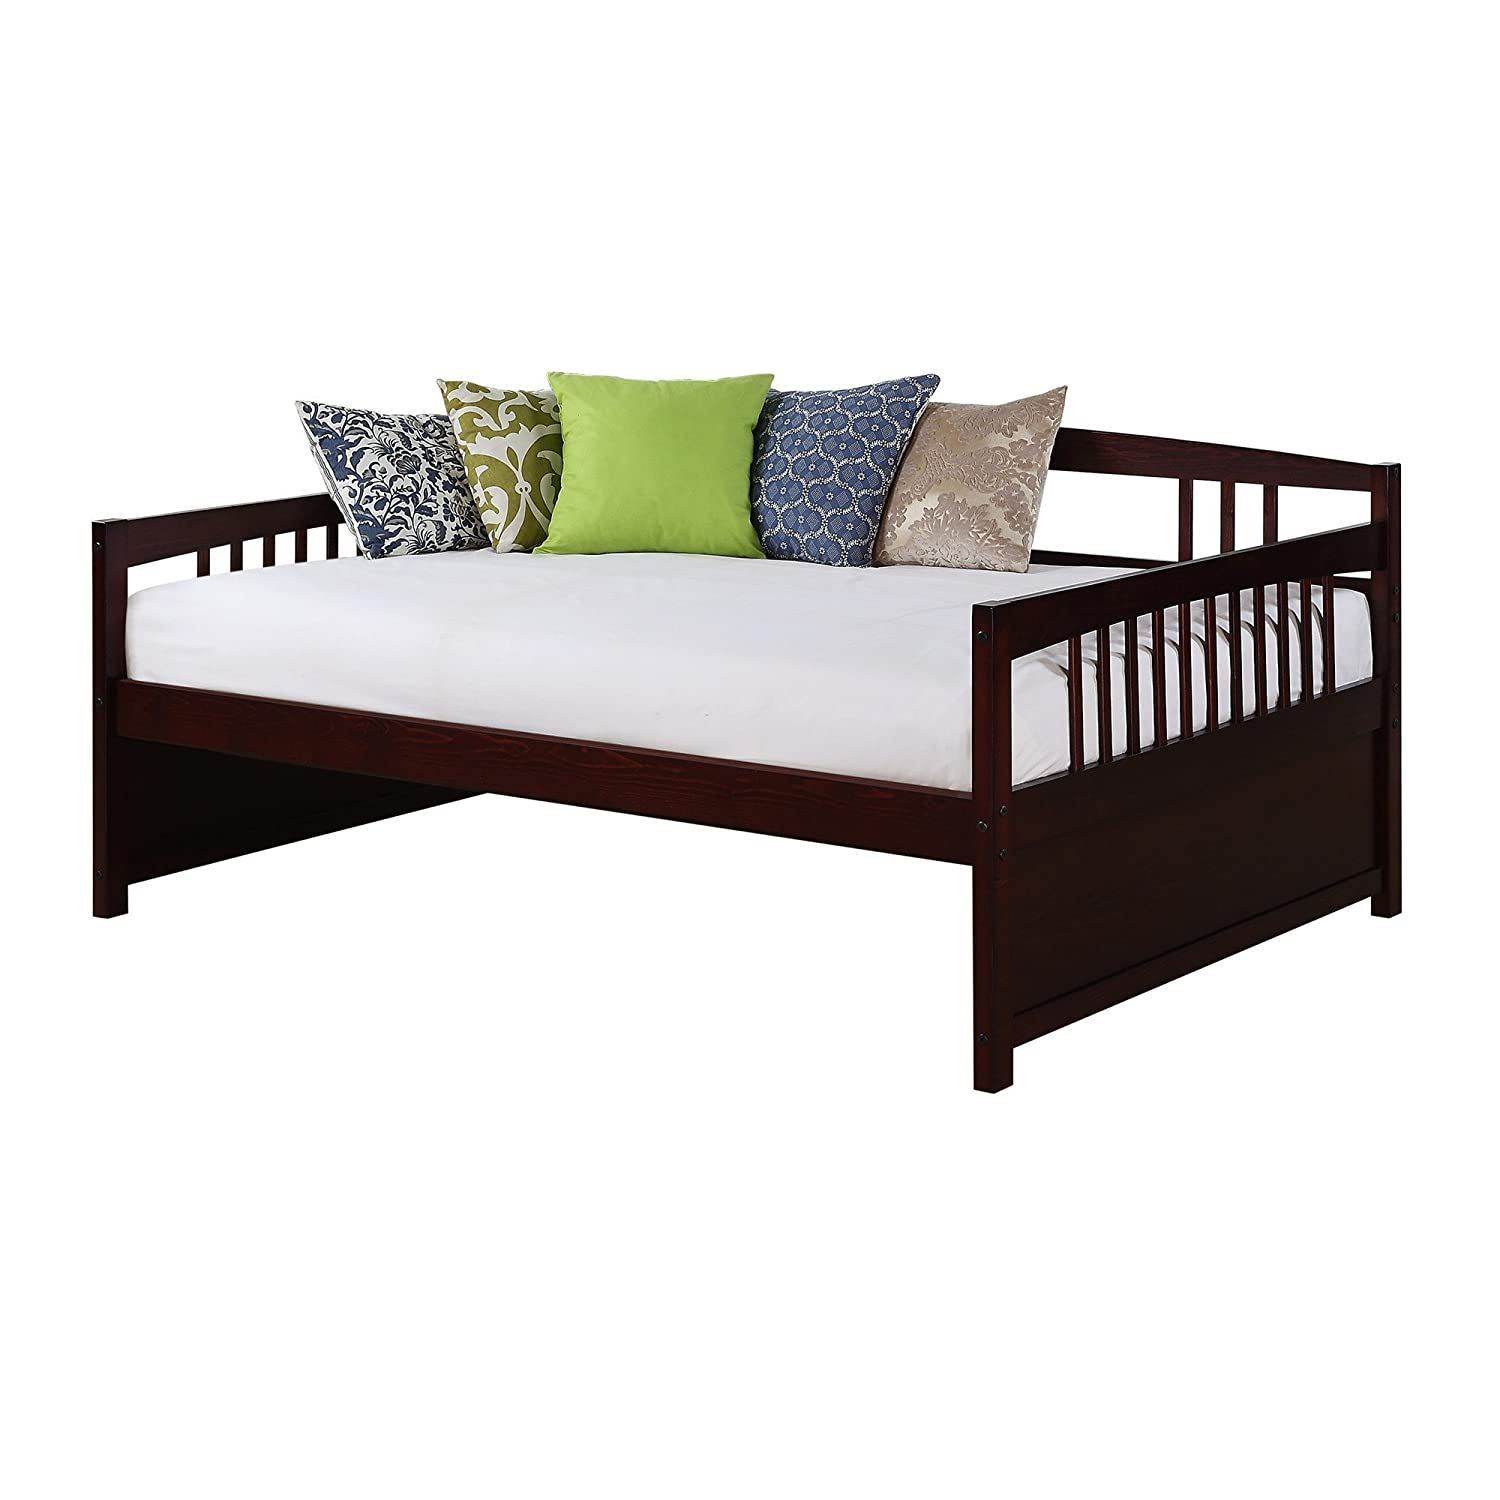 Amazon.com: Dorel Living Morgan Full Daybed, Espresso: Kitchen & Dining